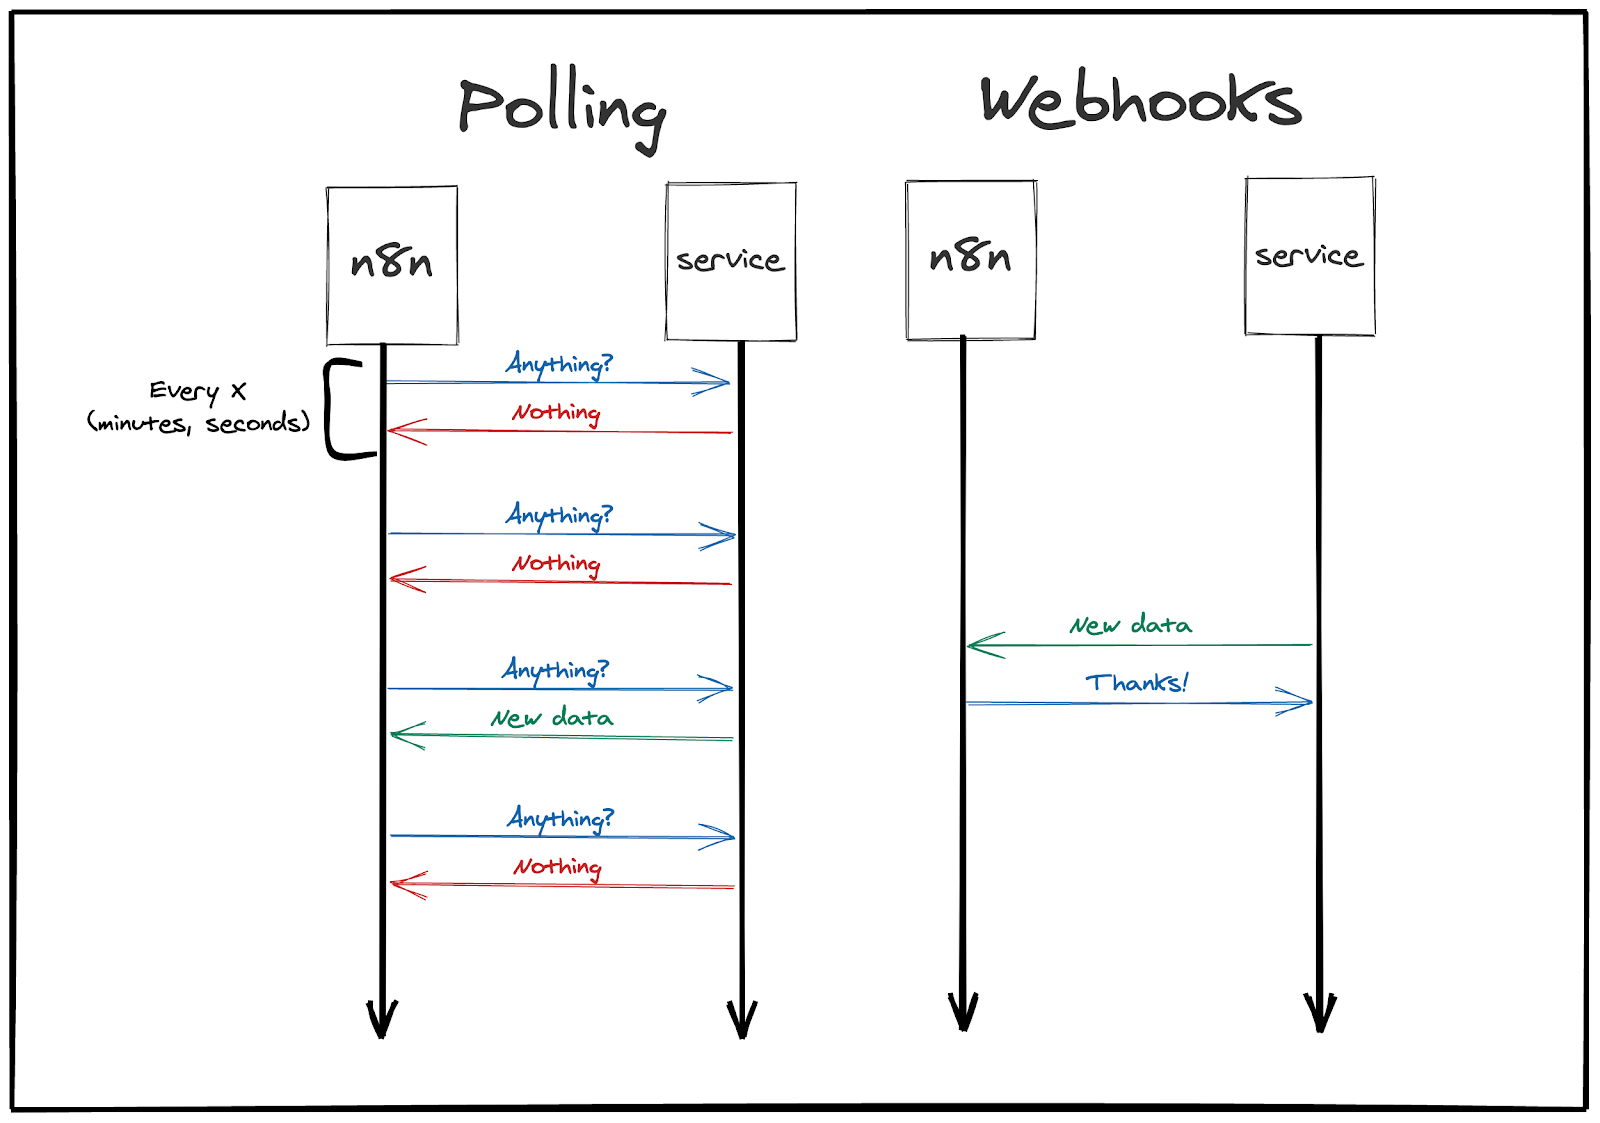 Difference between polling and webhook